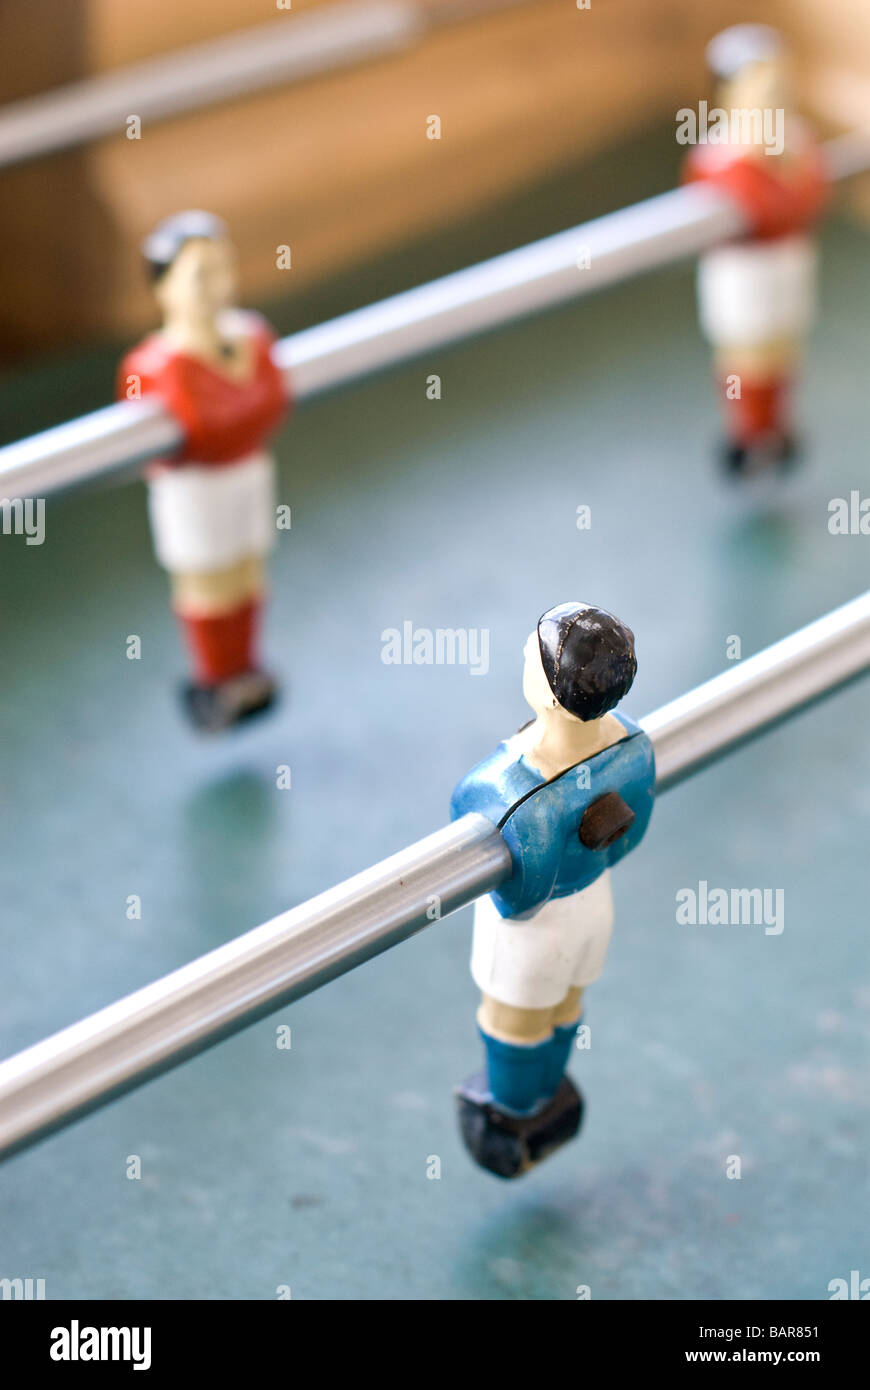 Opposition Players - Stock Image